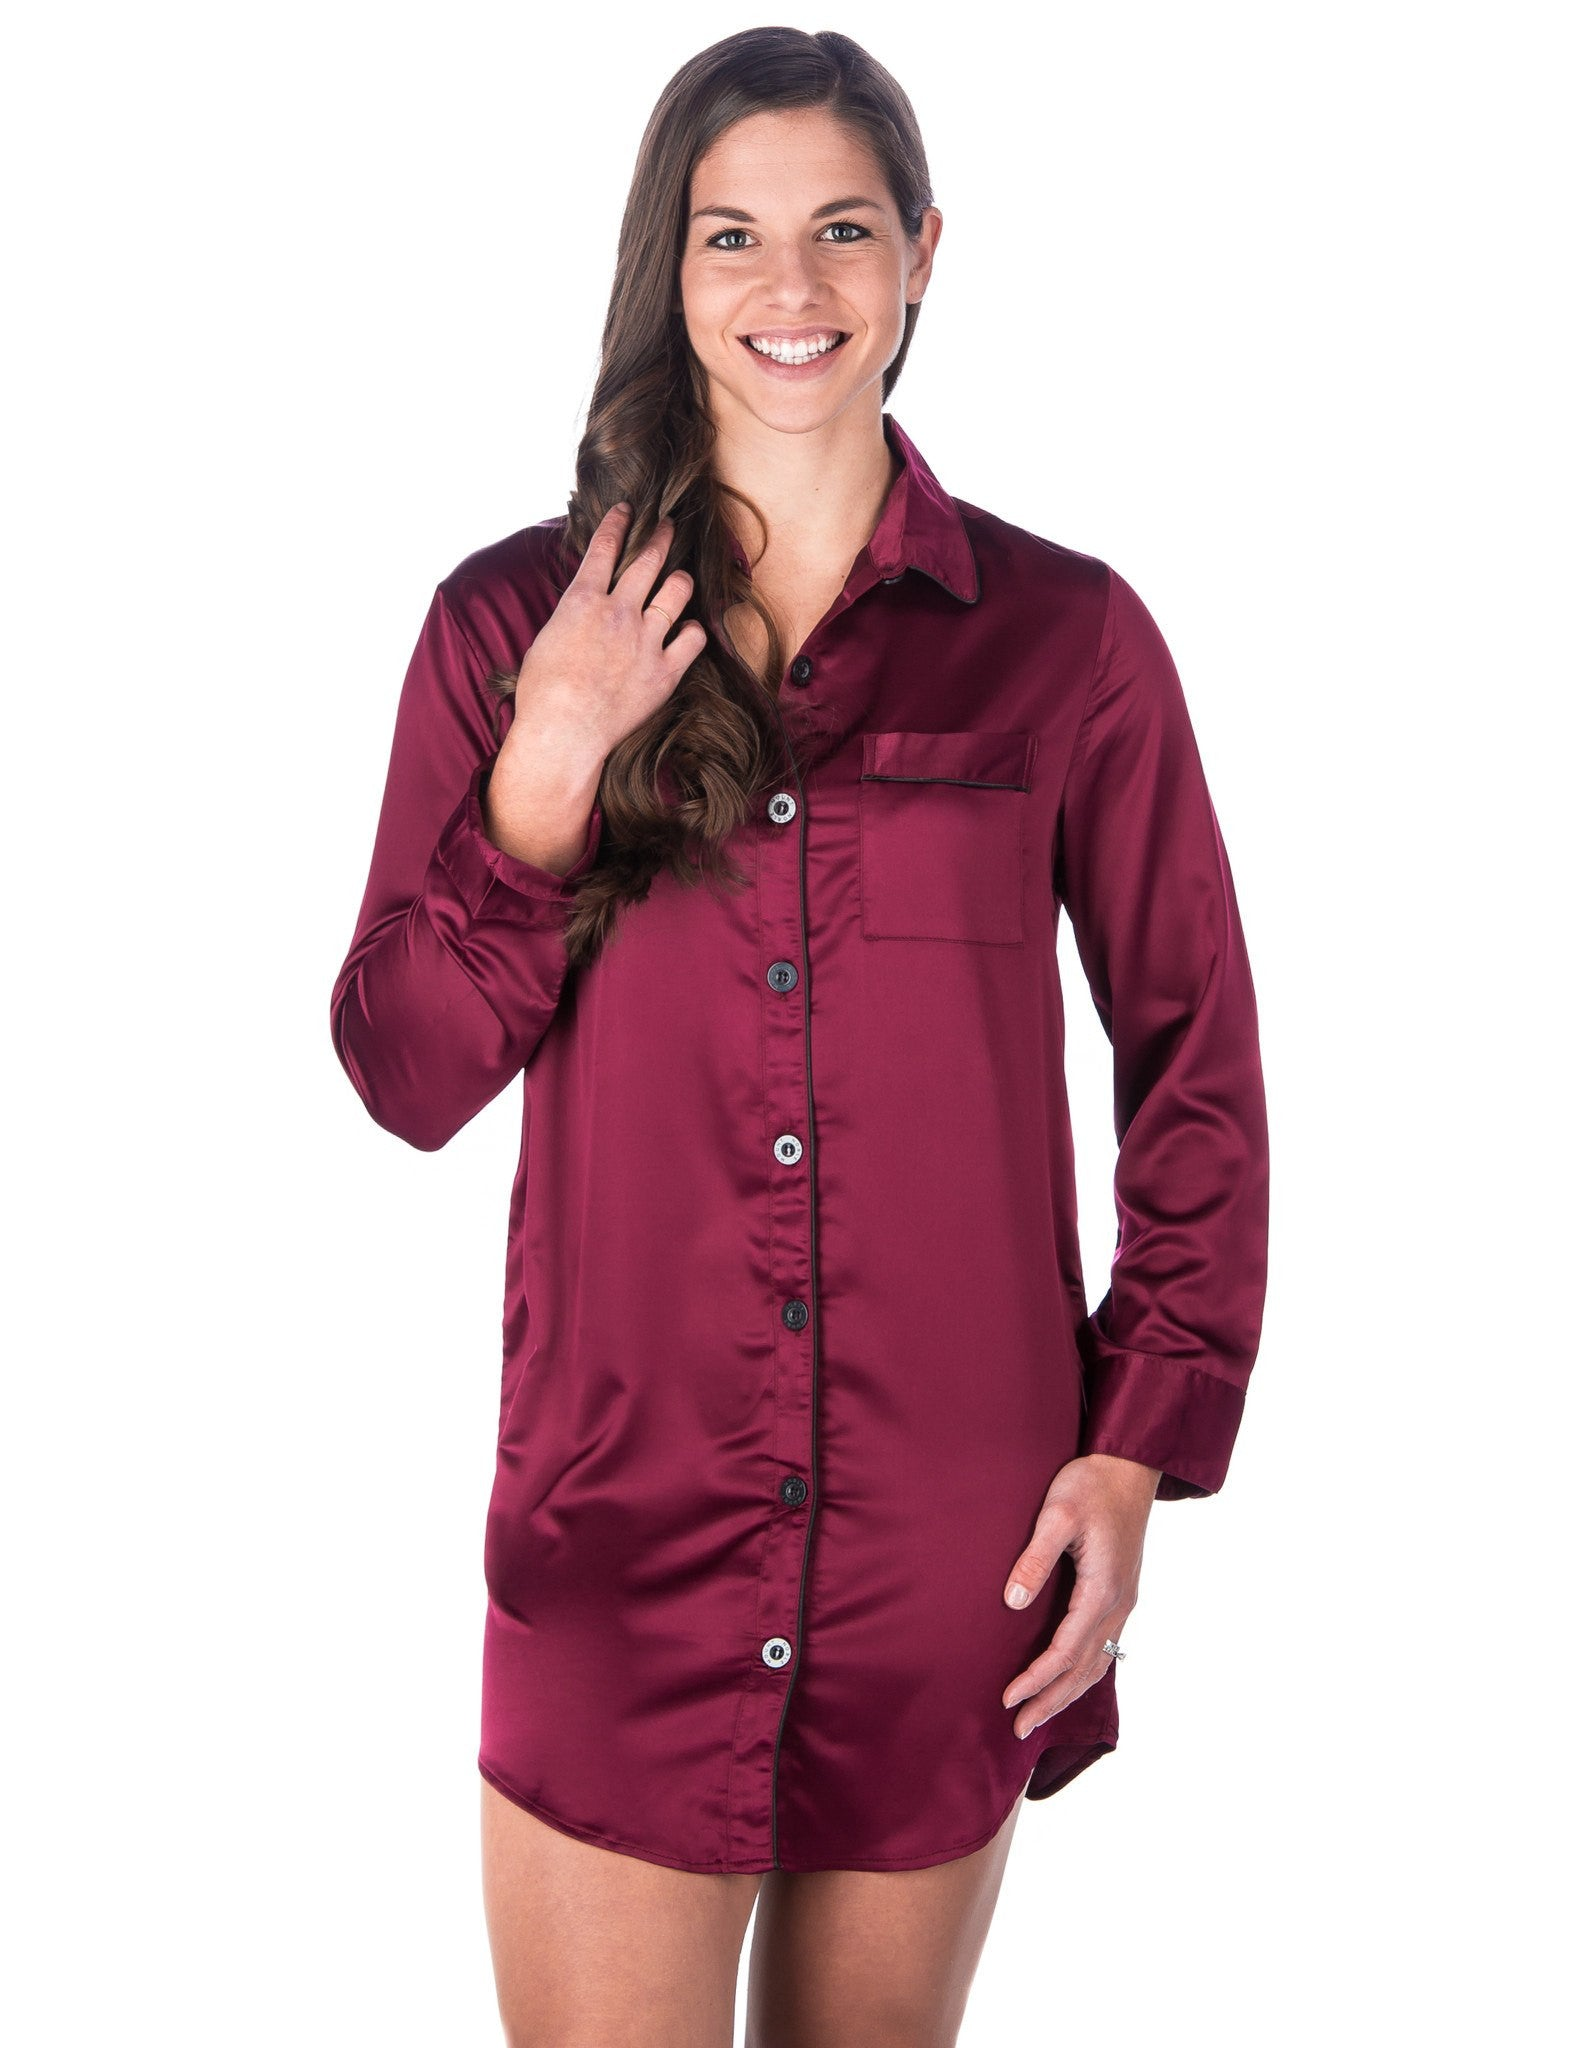 Women s Premium Satin Long Sleeve Sleep Shirt – Noble Mount cf06de6c0